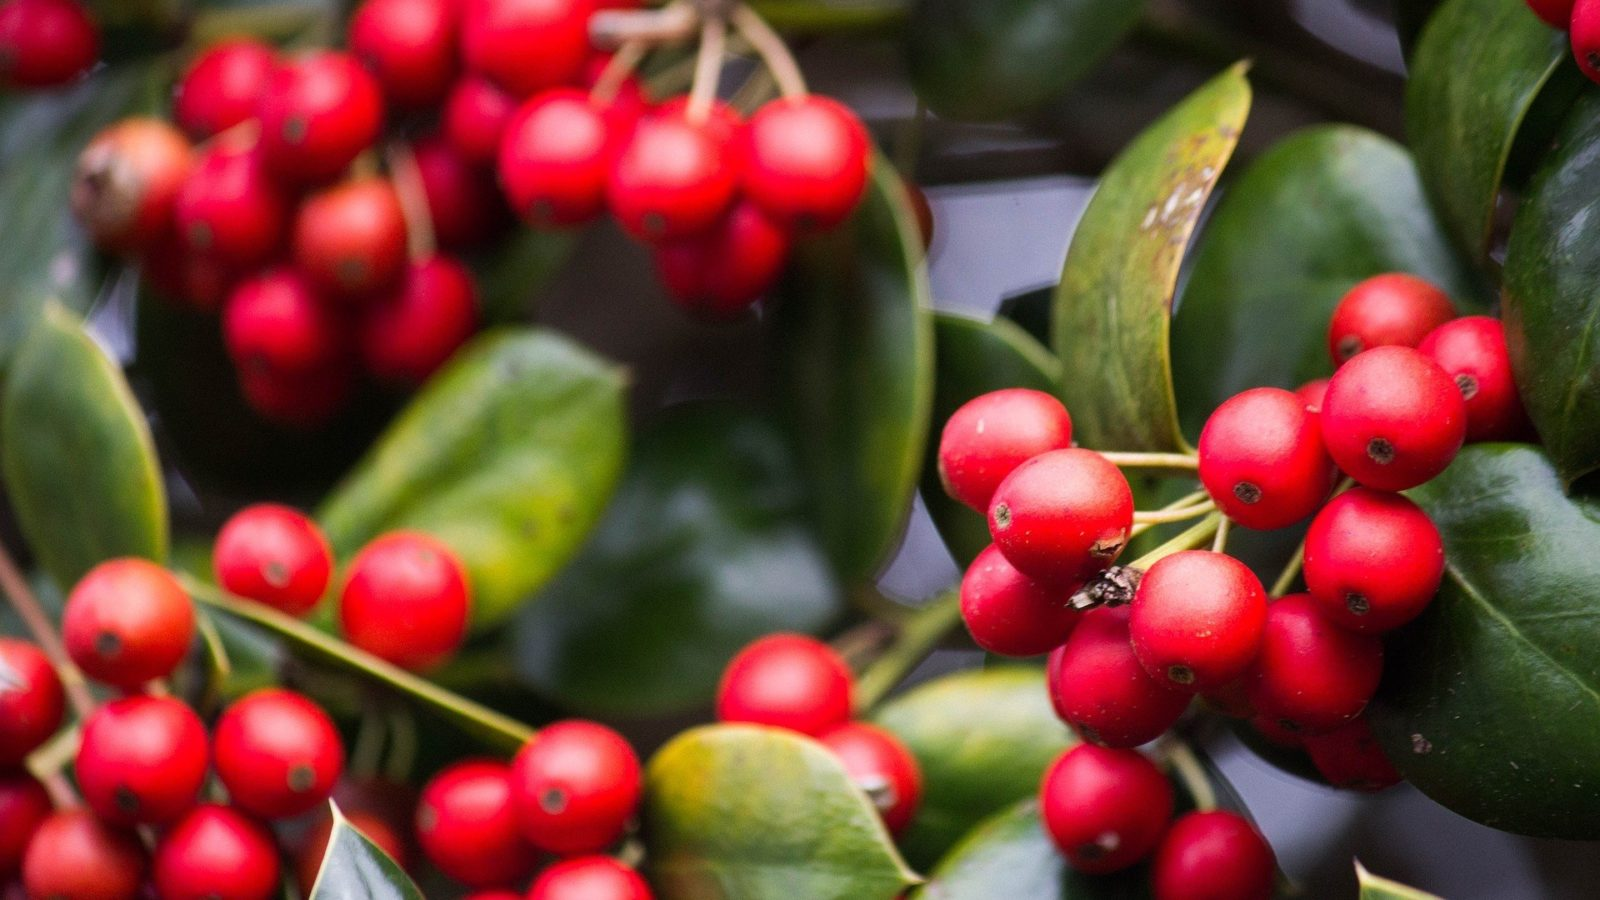 poisonous plants, holiday